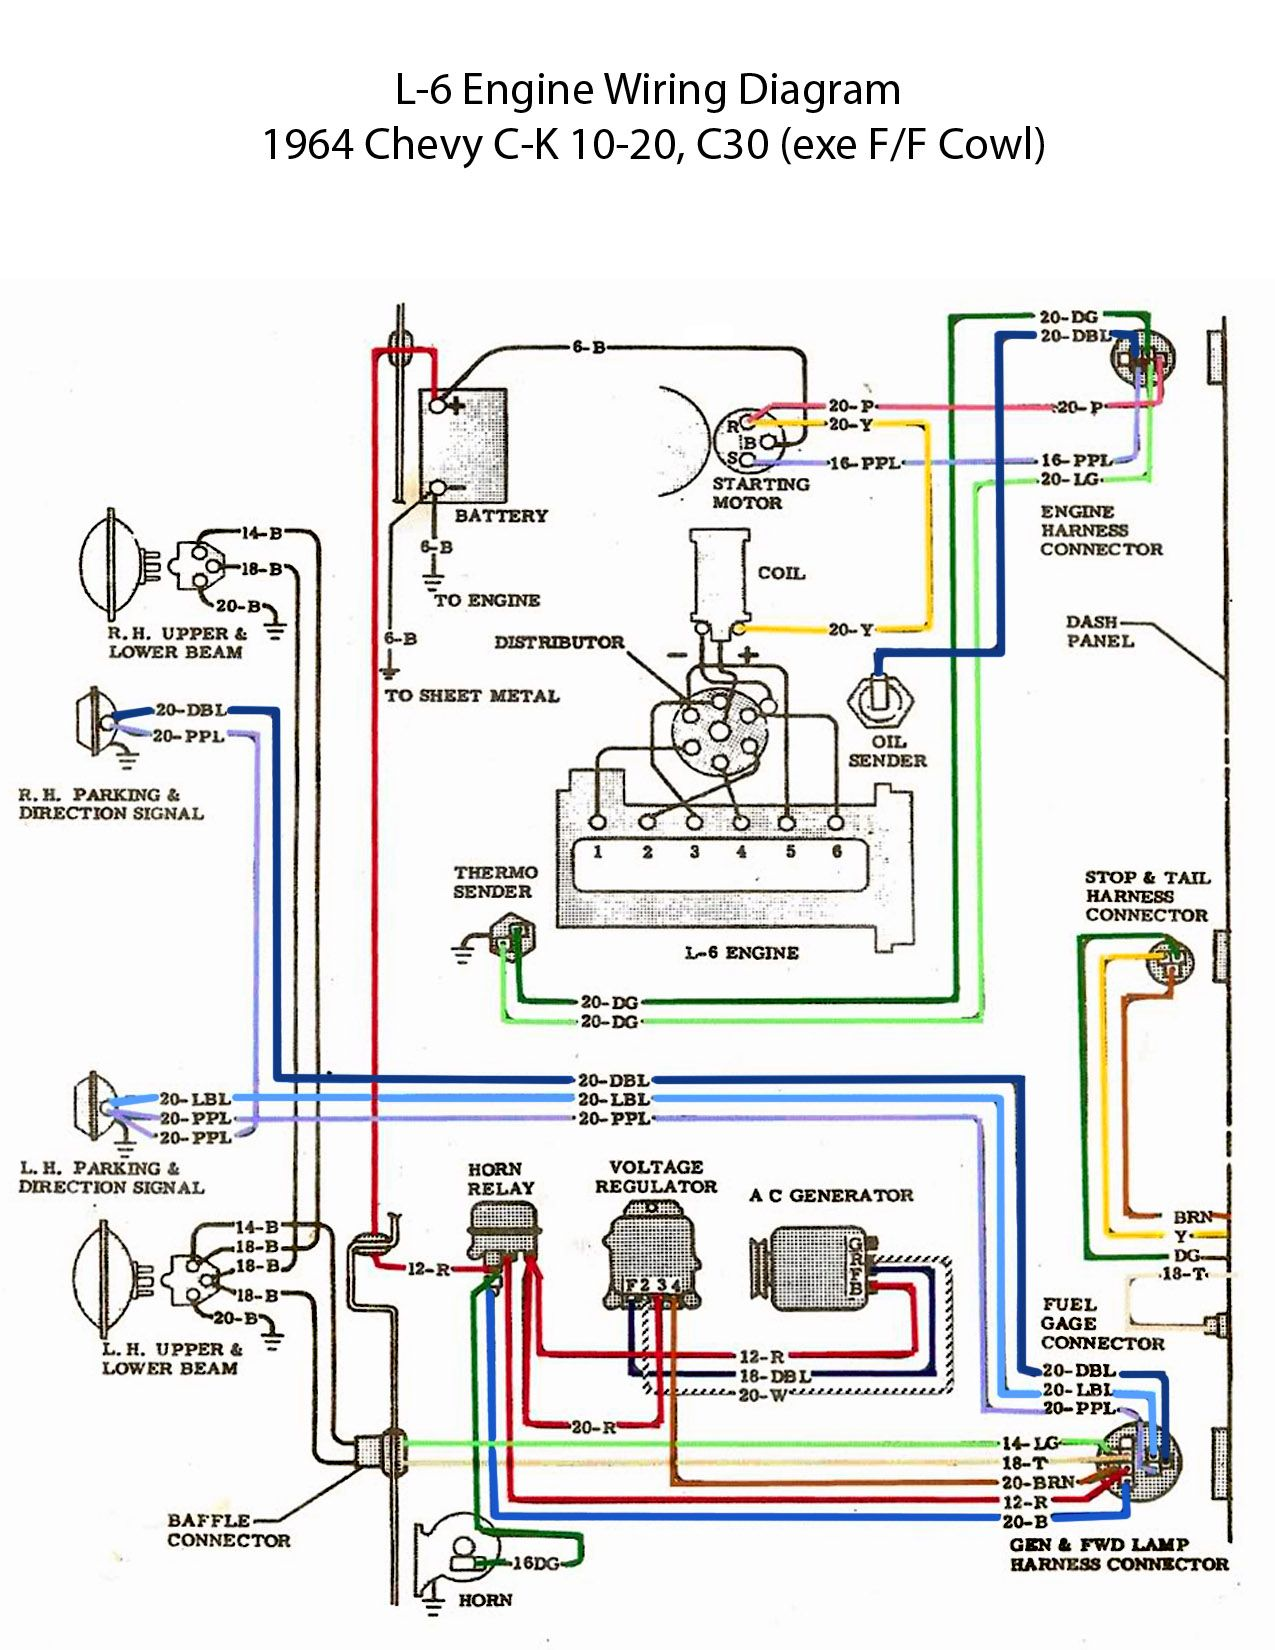 electric l 6 engine wiring diagram 60s chevy c10 wiring chevy 6 5 wiring diagram [ 1275 x 1650 Pixel ]